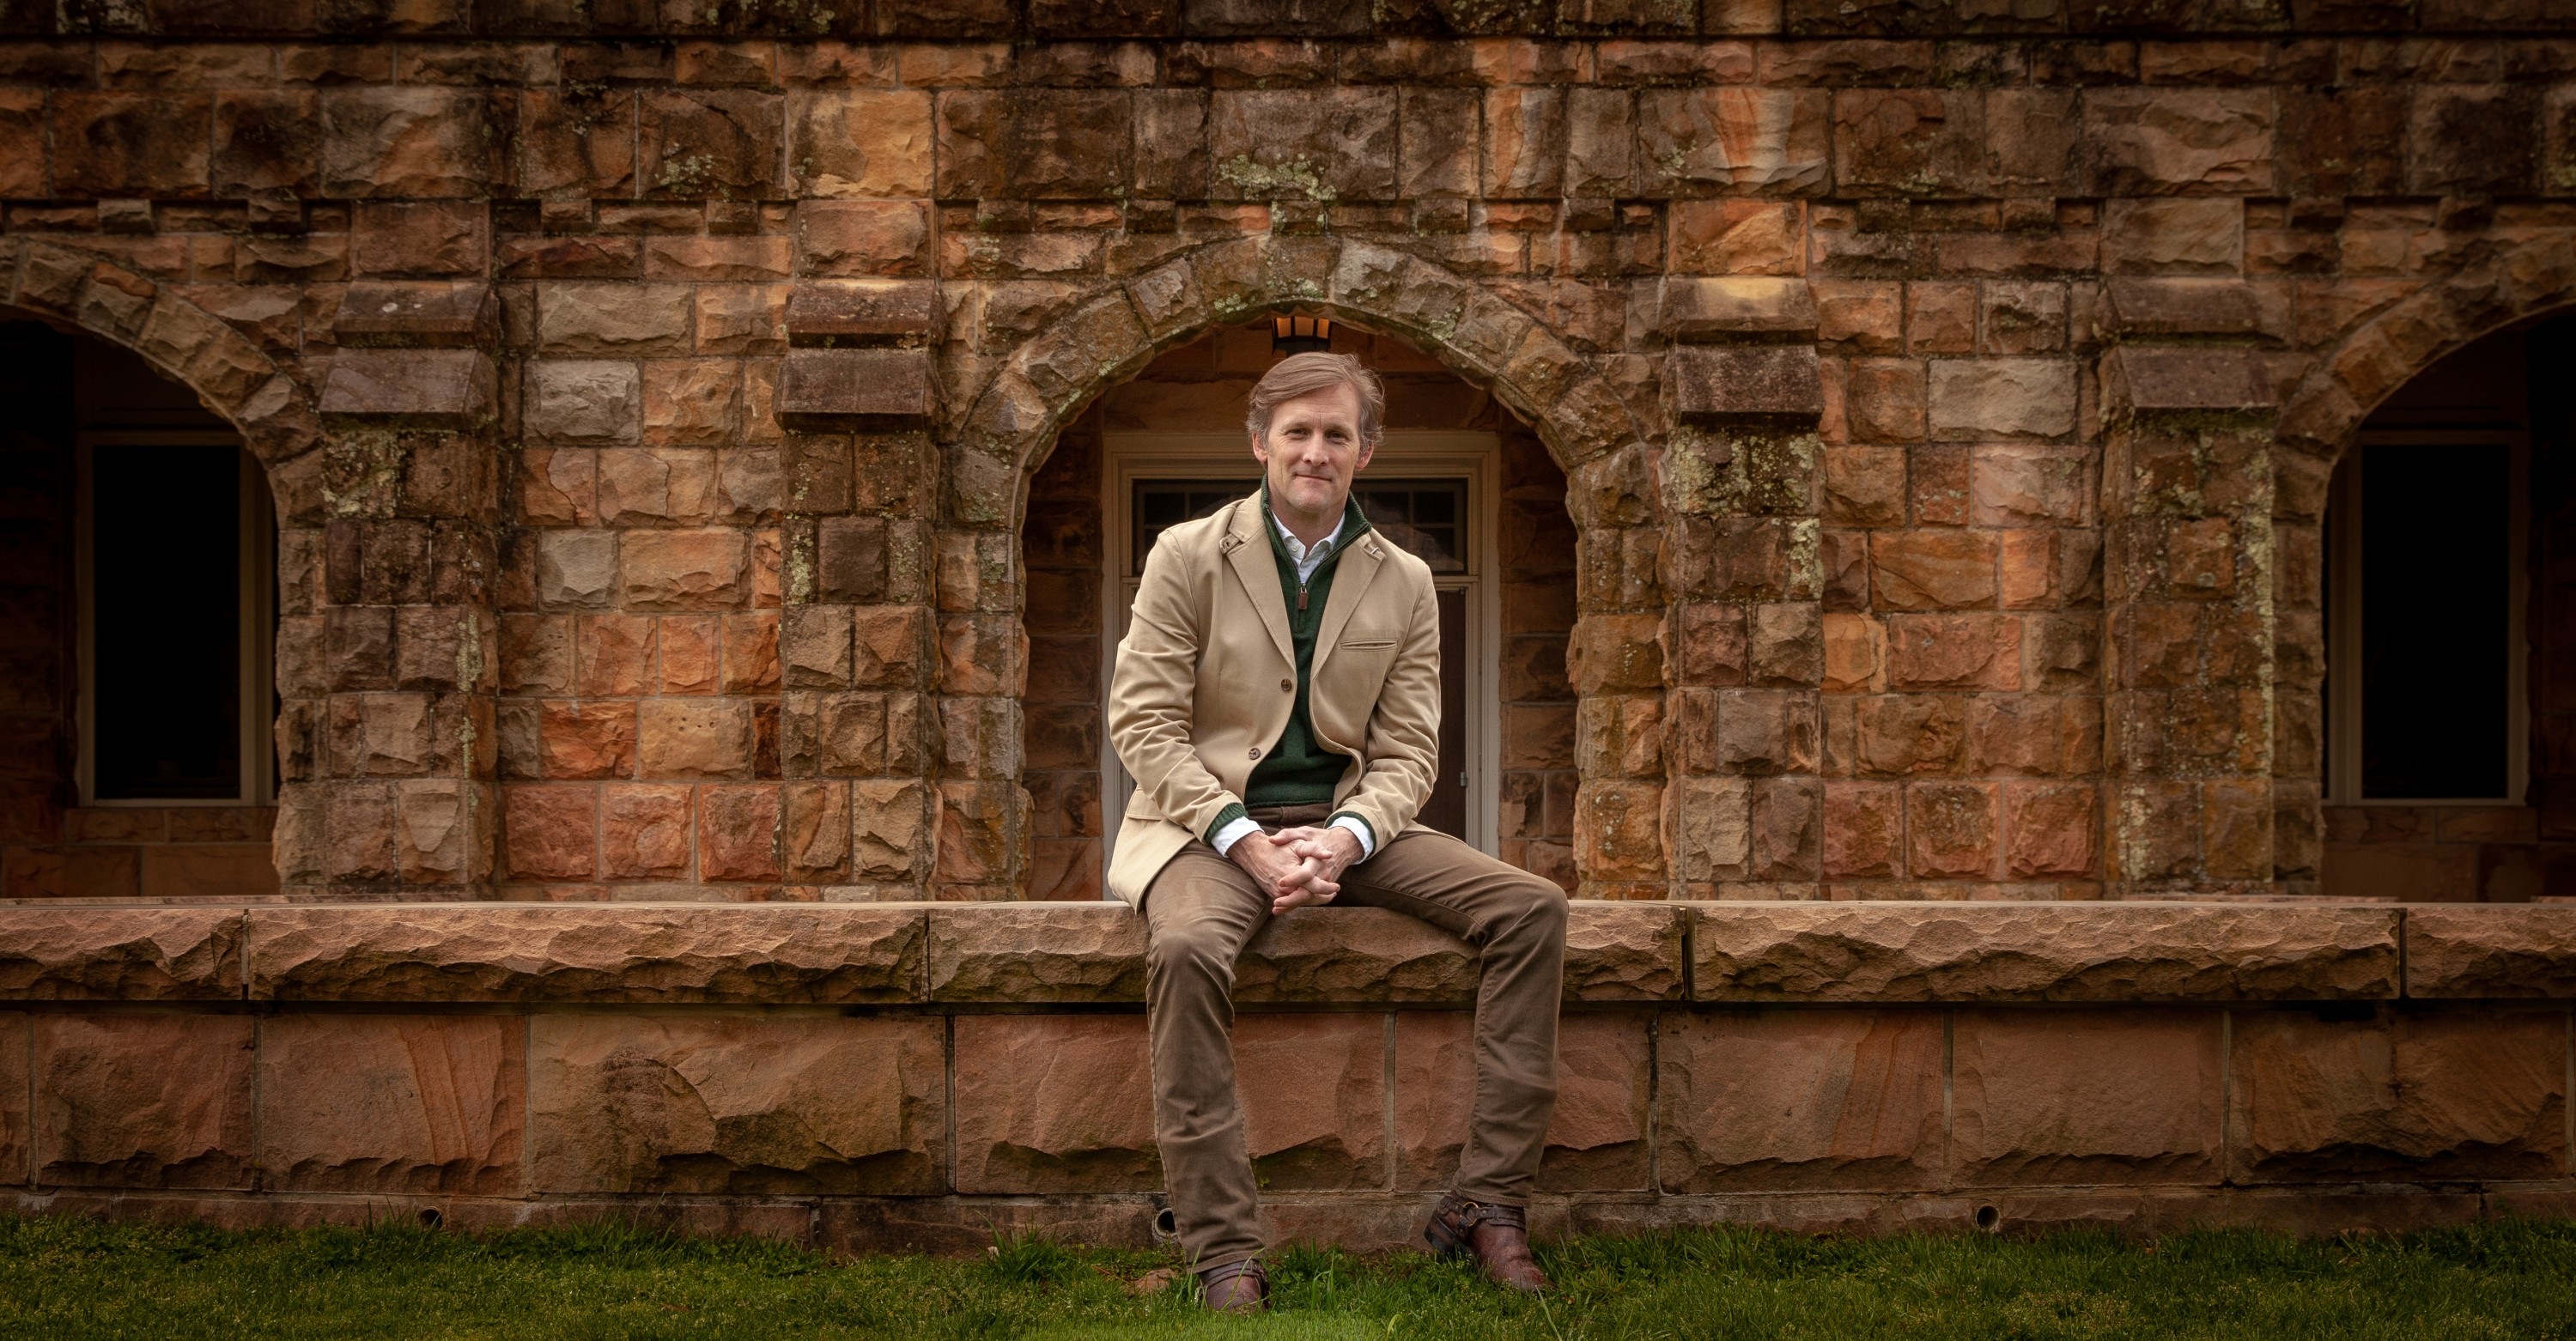 Julian Adams, C'94, photographed during a recent visit to Sewanee. Photo by Buck Butler